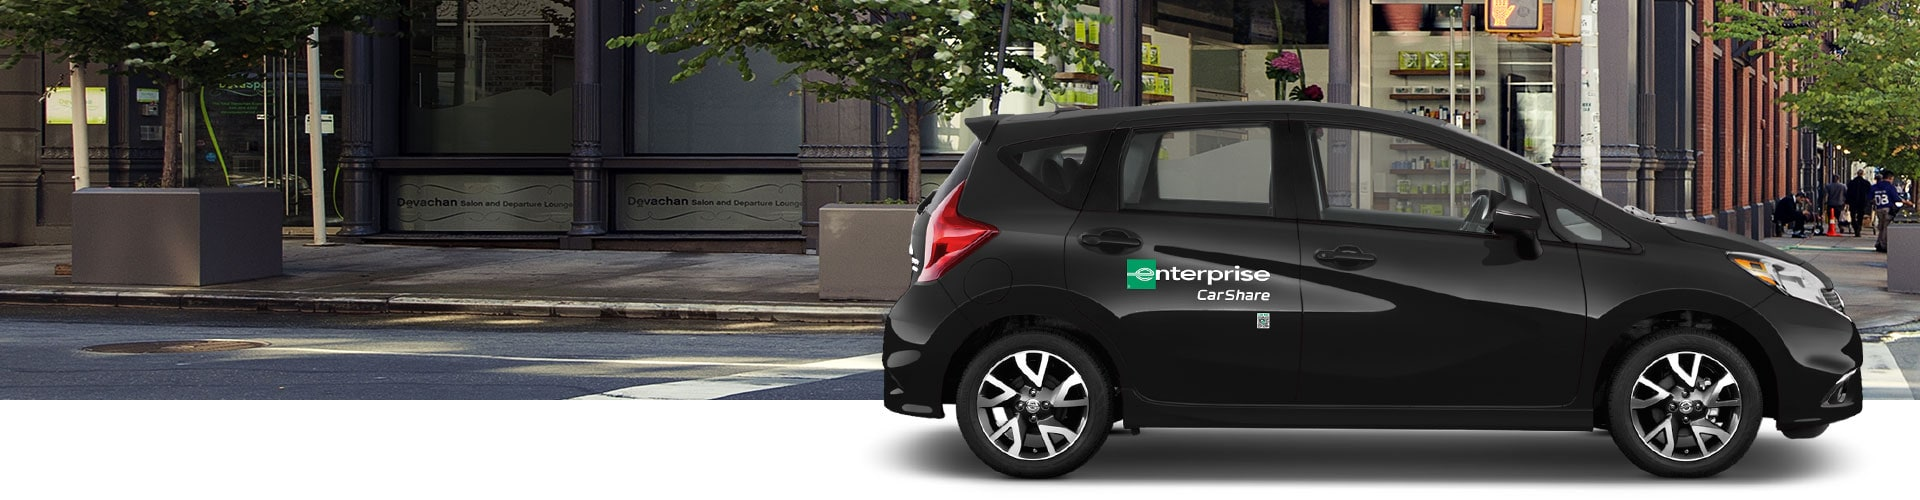 Enterprise Carshare Hourly Car Rental Enterprise Rent A Car